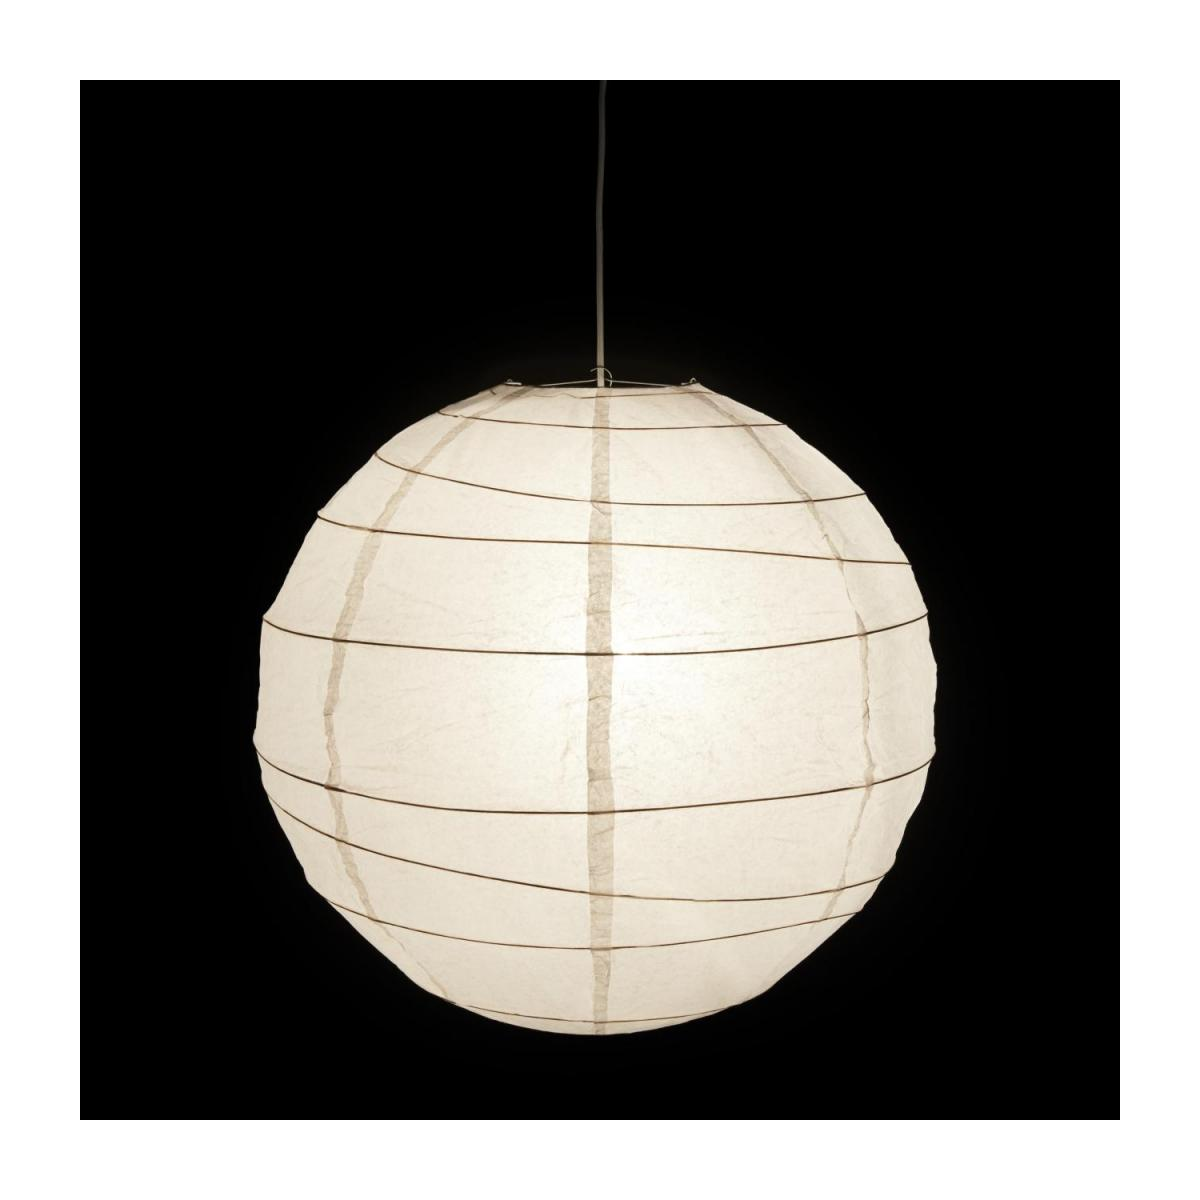 ceiling light lampshade 60 cm n°2